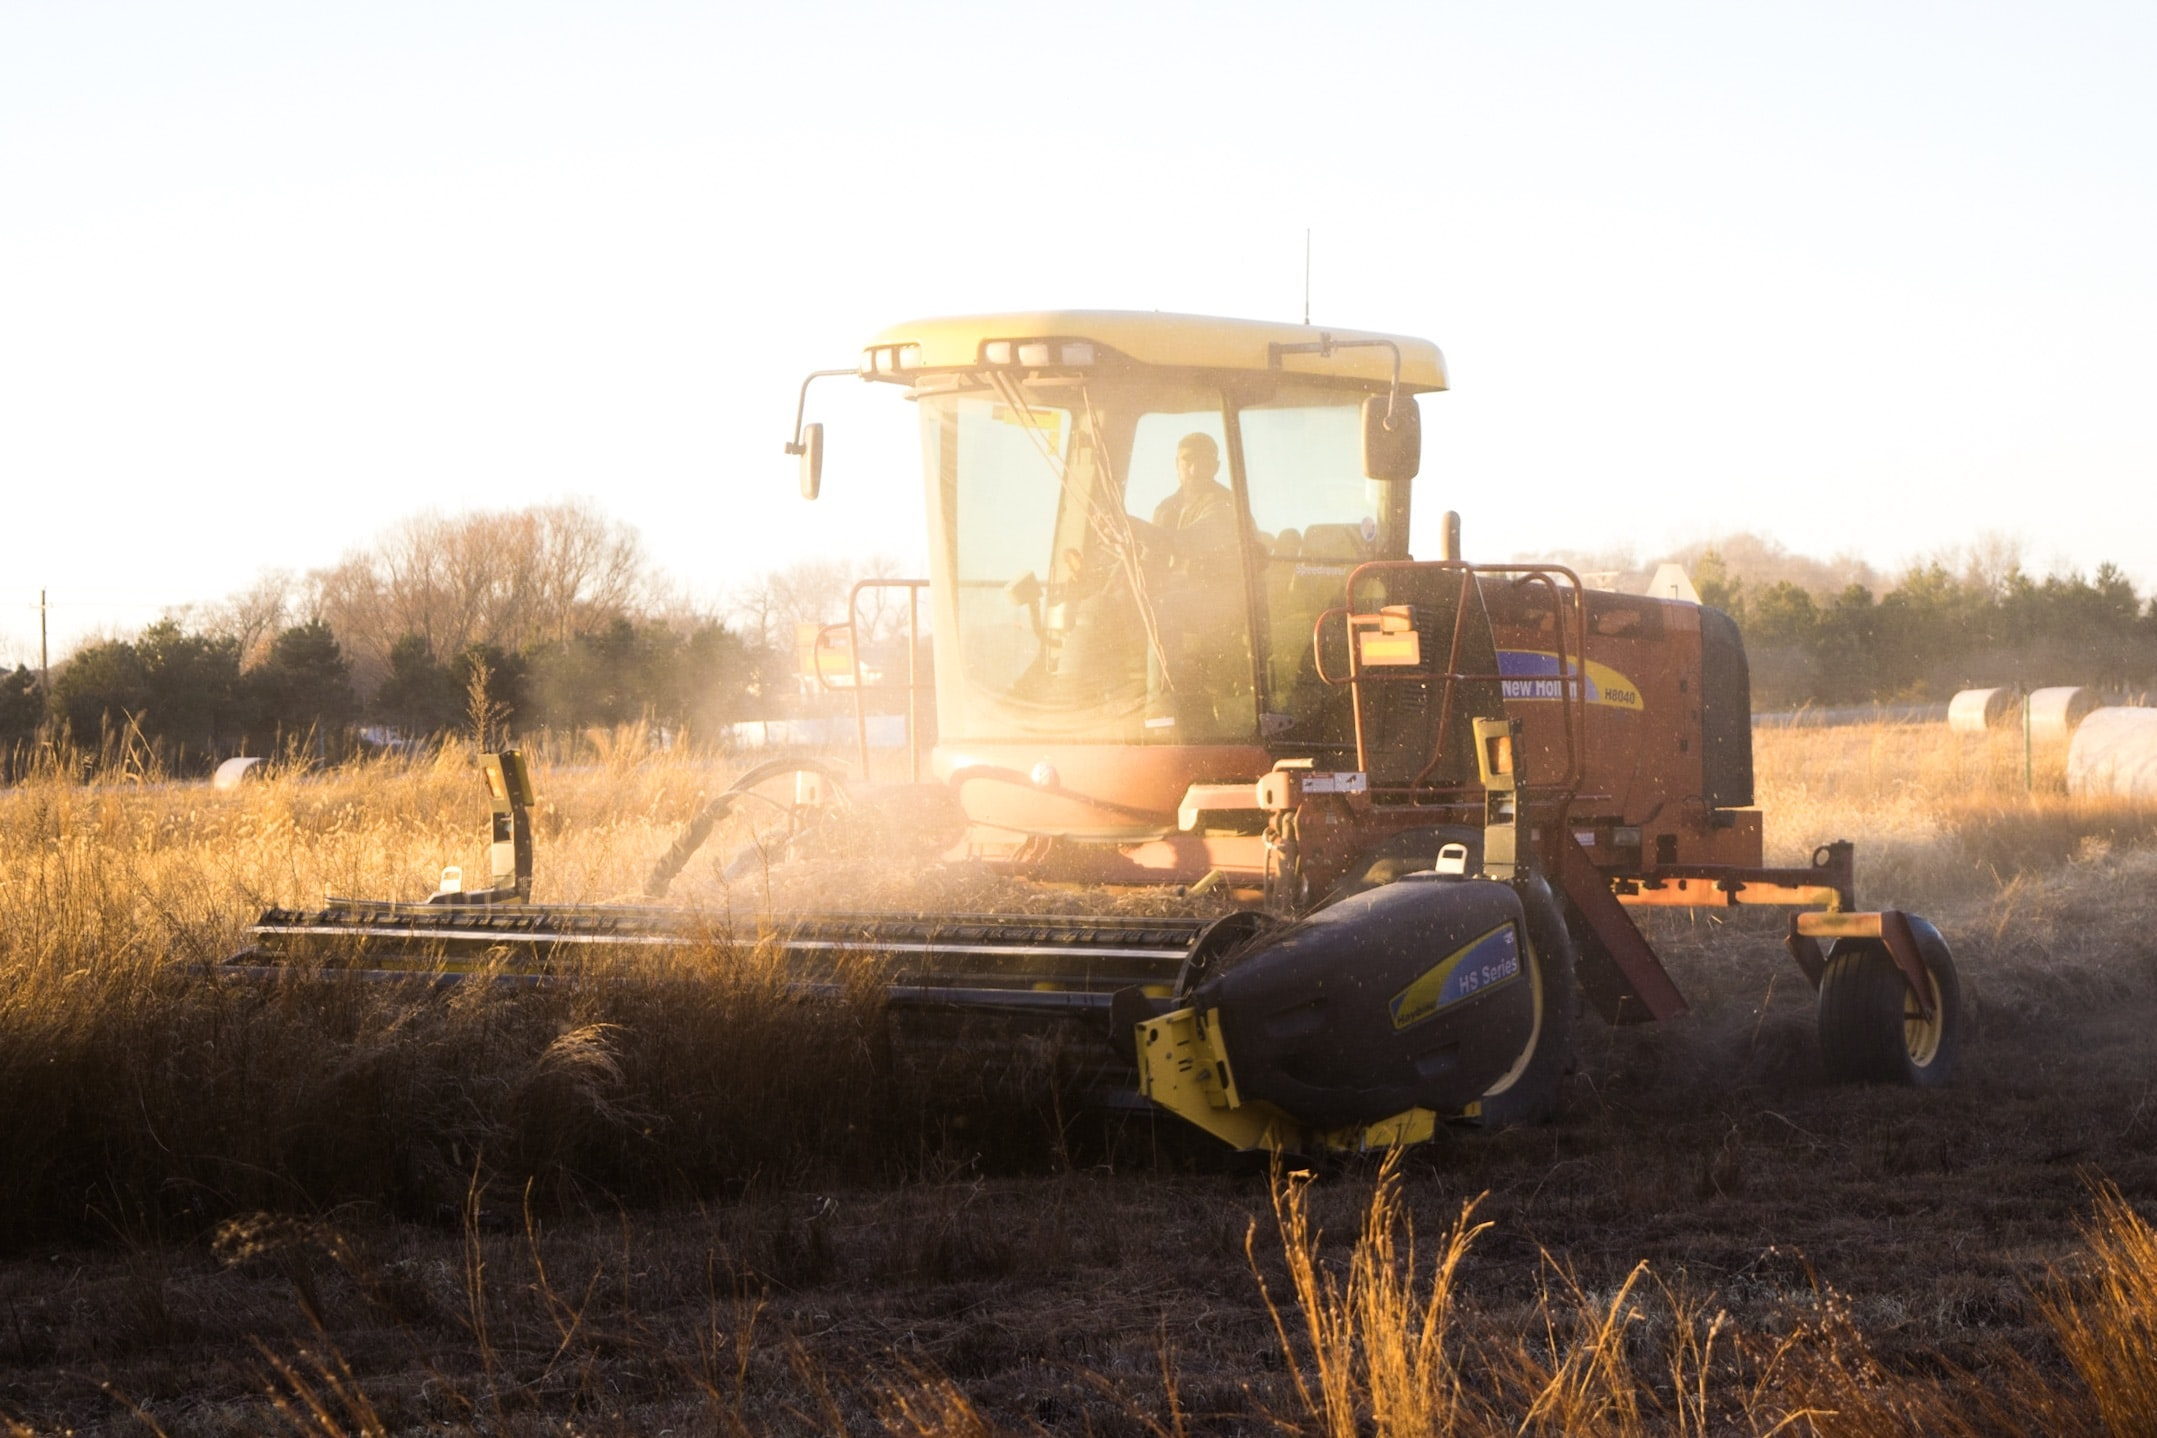 A farmer in a tractor, clearing wheat during sunset in Lincoln